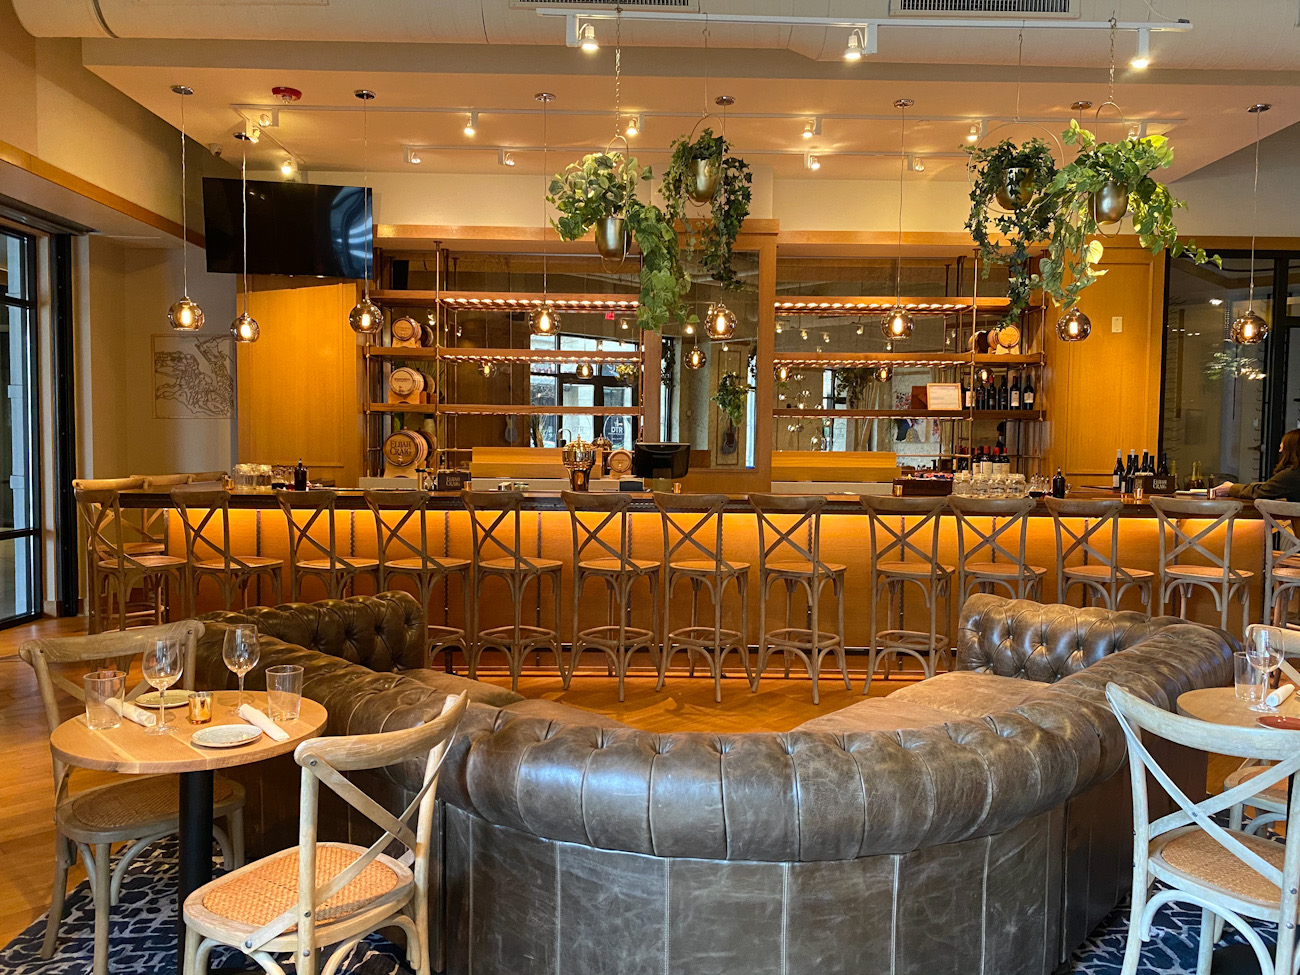 GIVEAWAY: Win one of five $50 gift cards to Dilworth Tasing Room